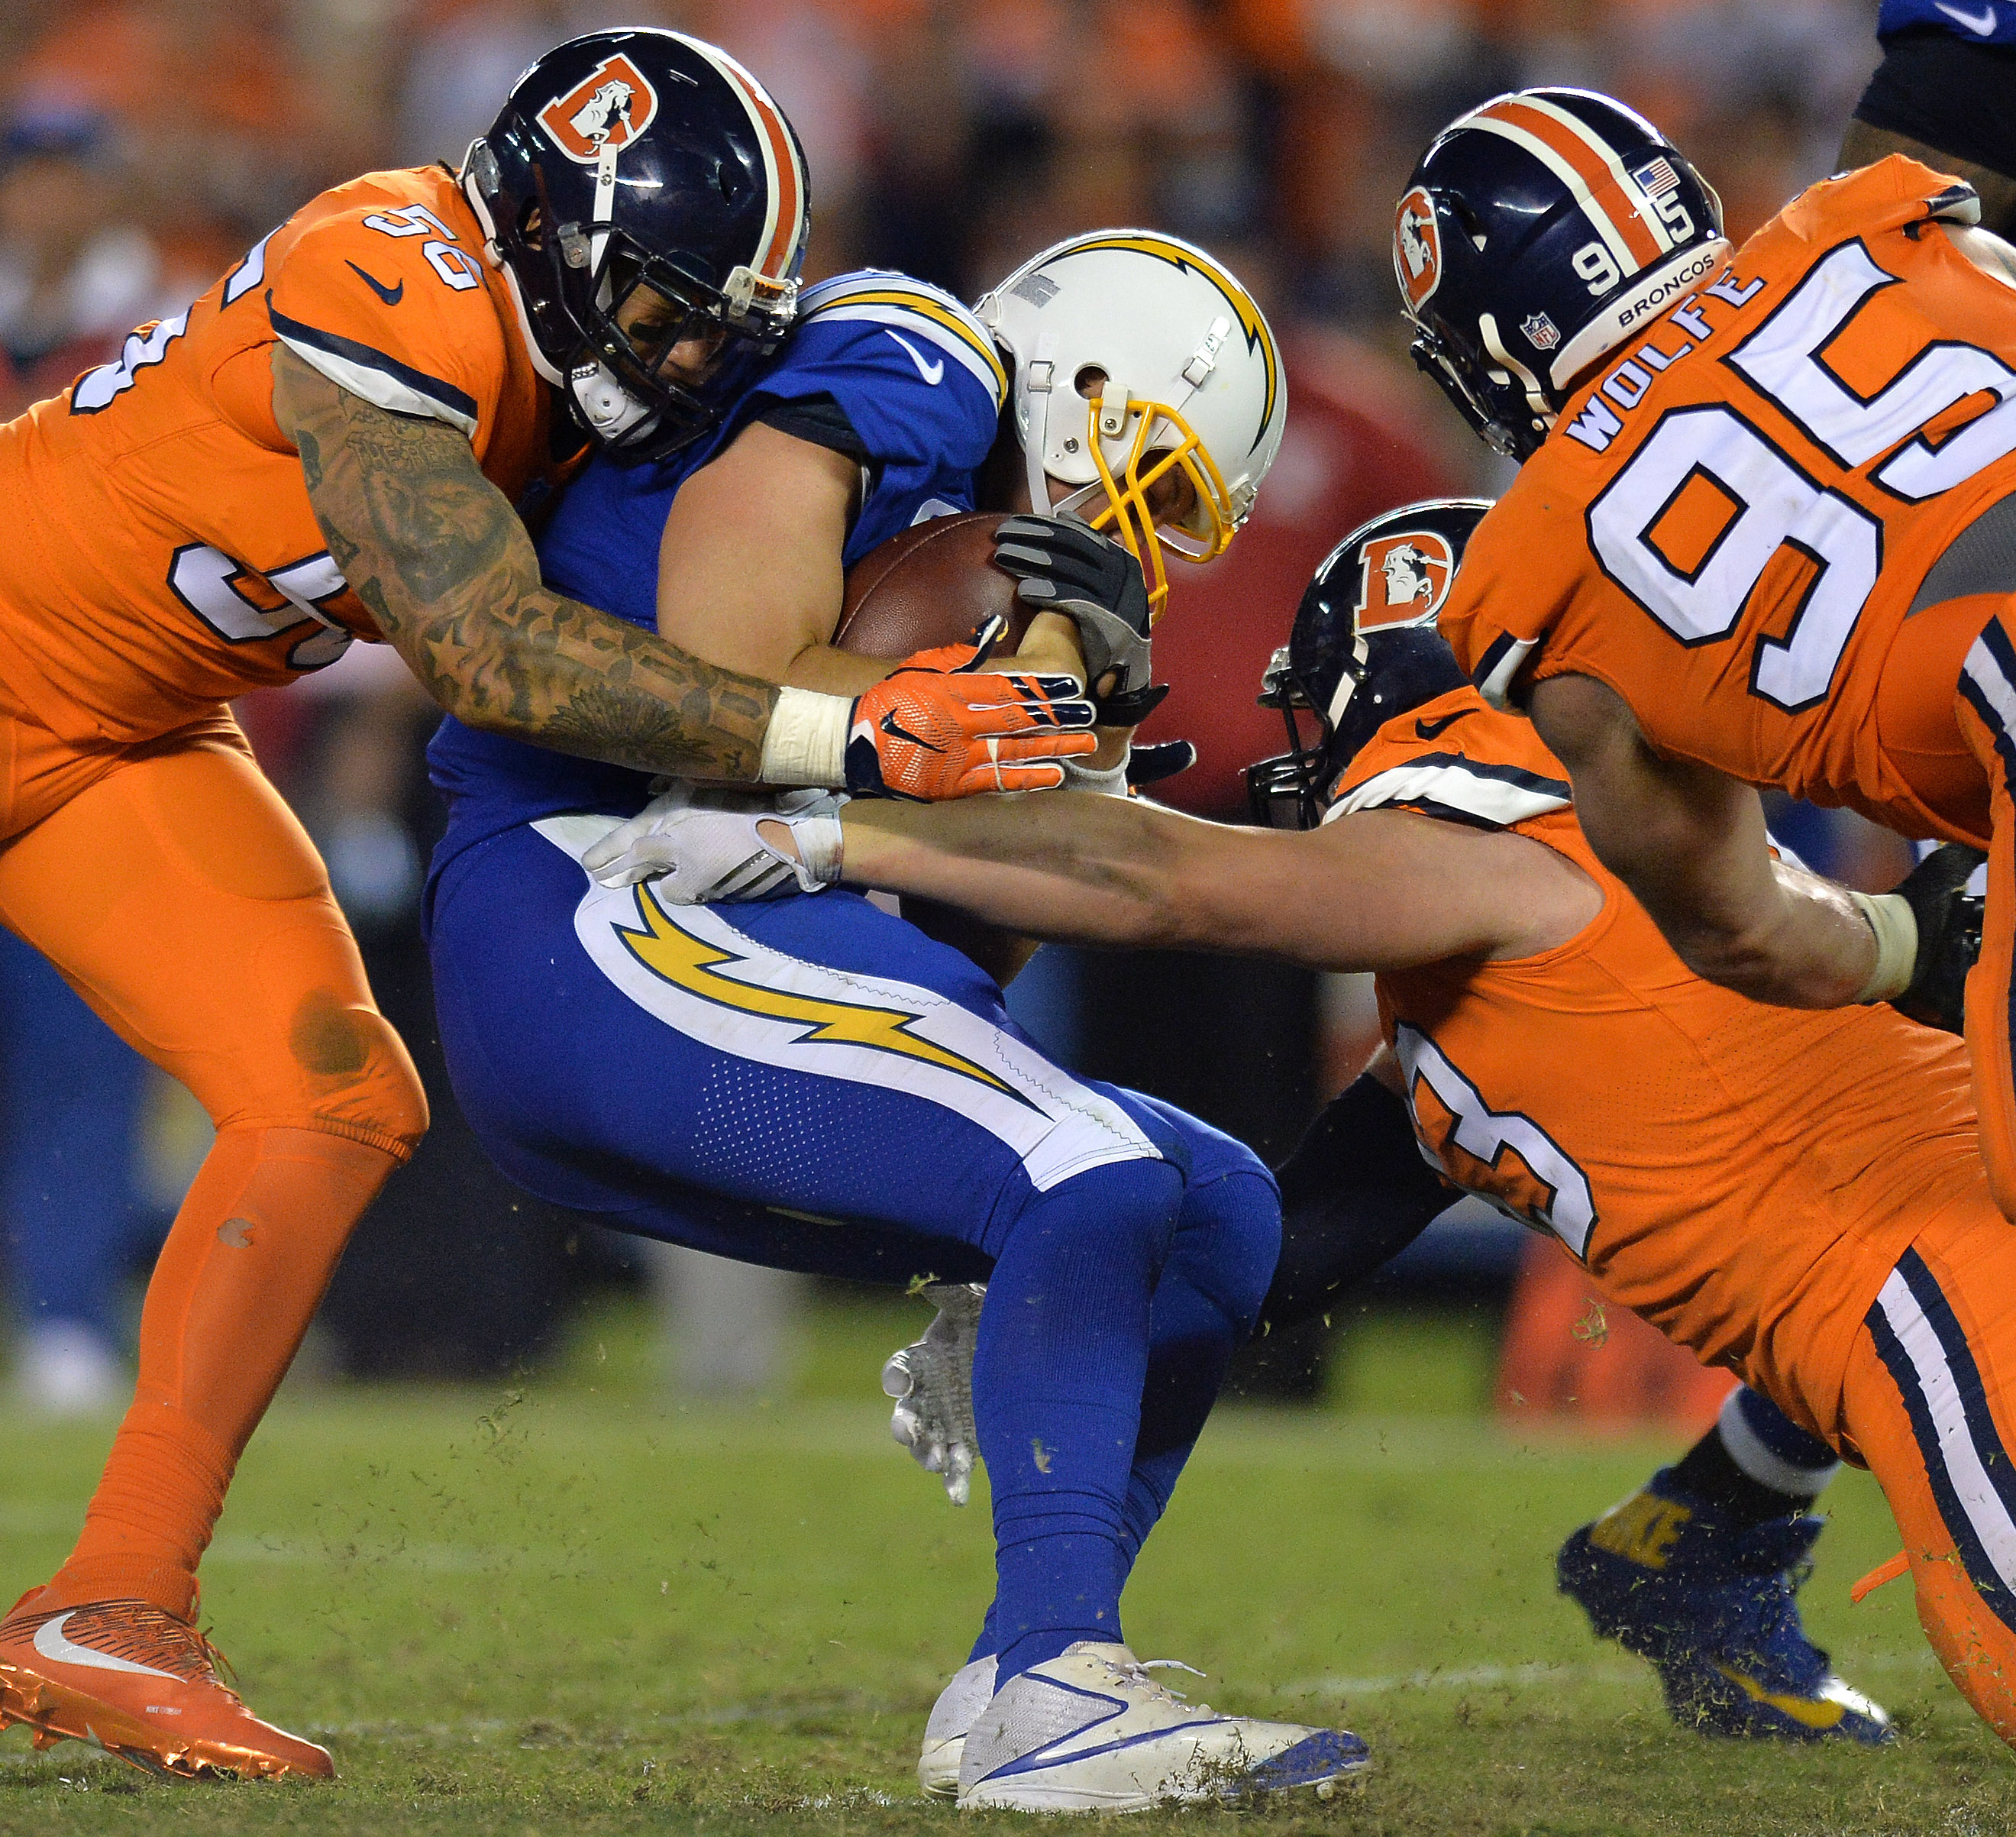 San Diego Chargers Broadcast: Denver Broncos Vs. Oakland Raiders: TV Broadcast Map (NFL